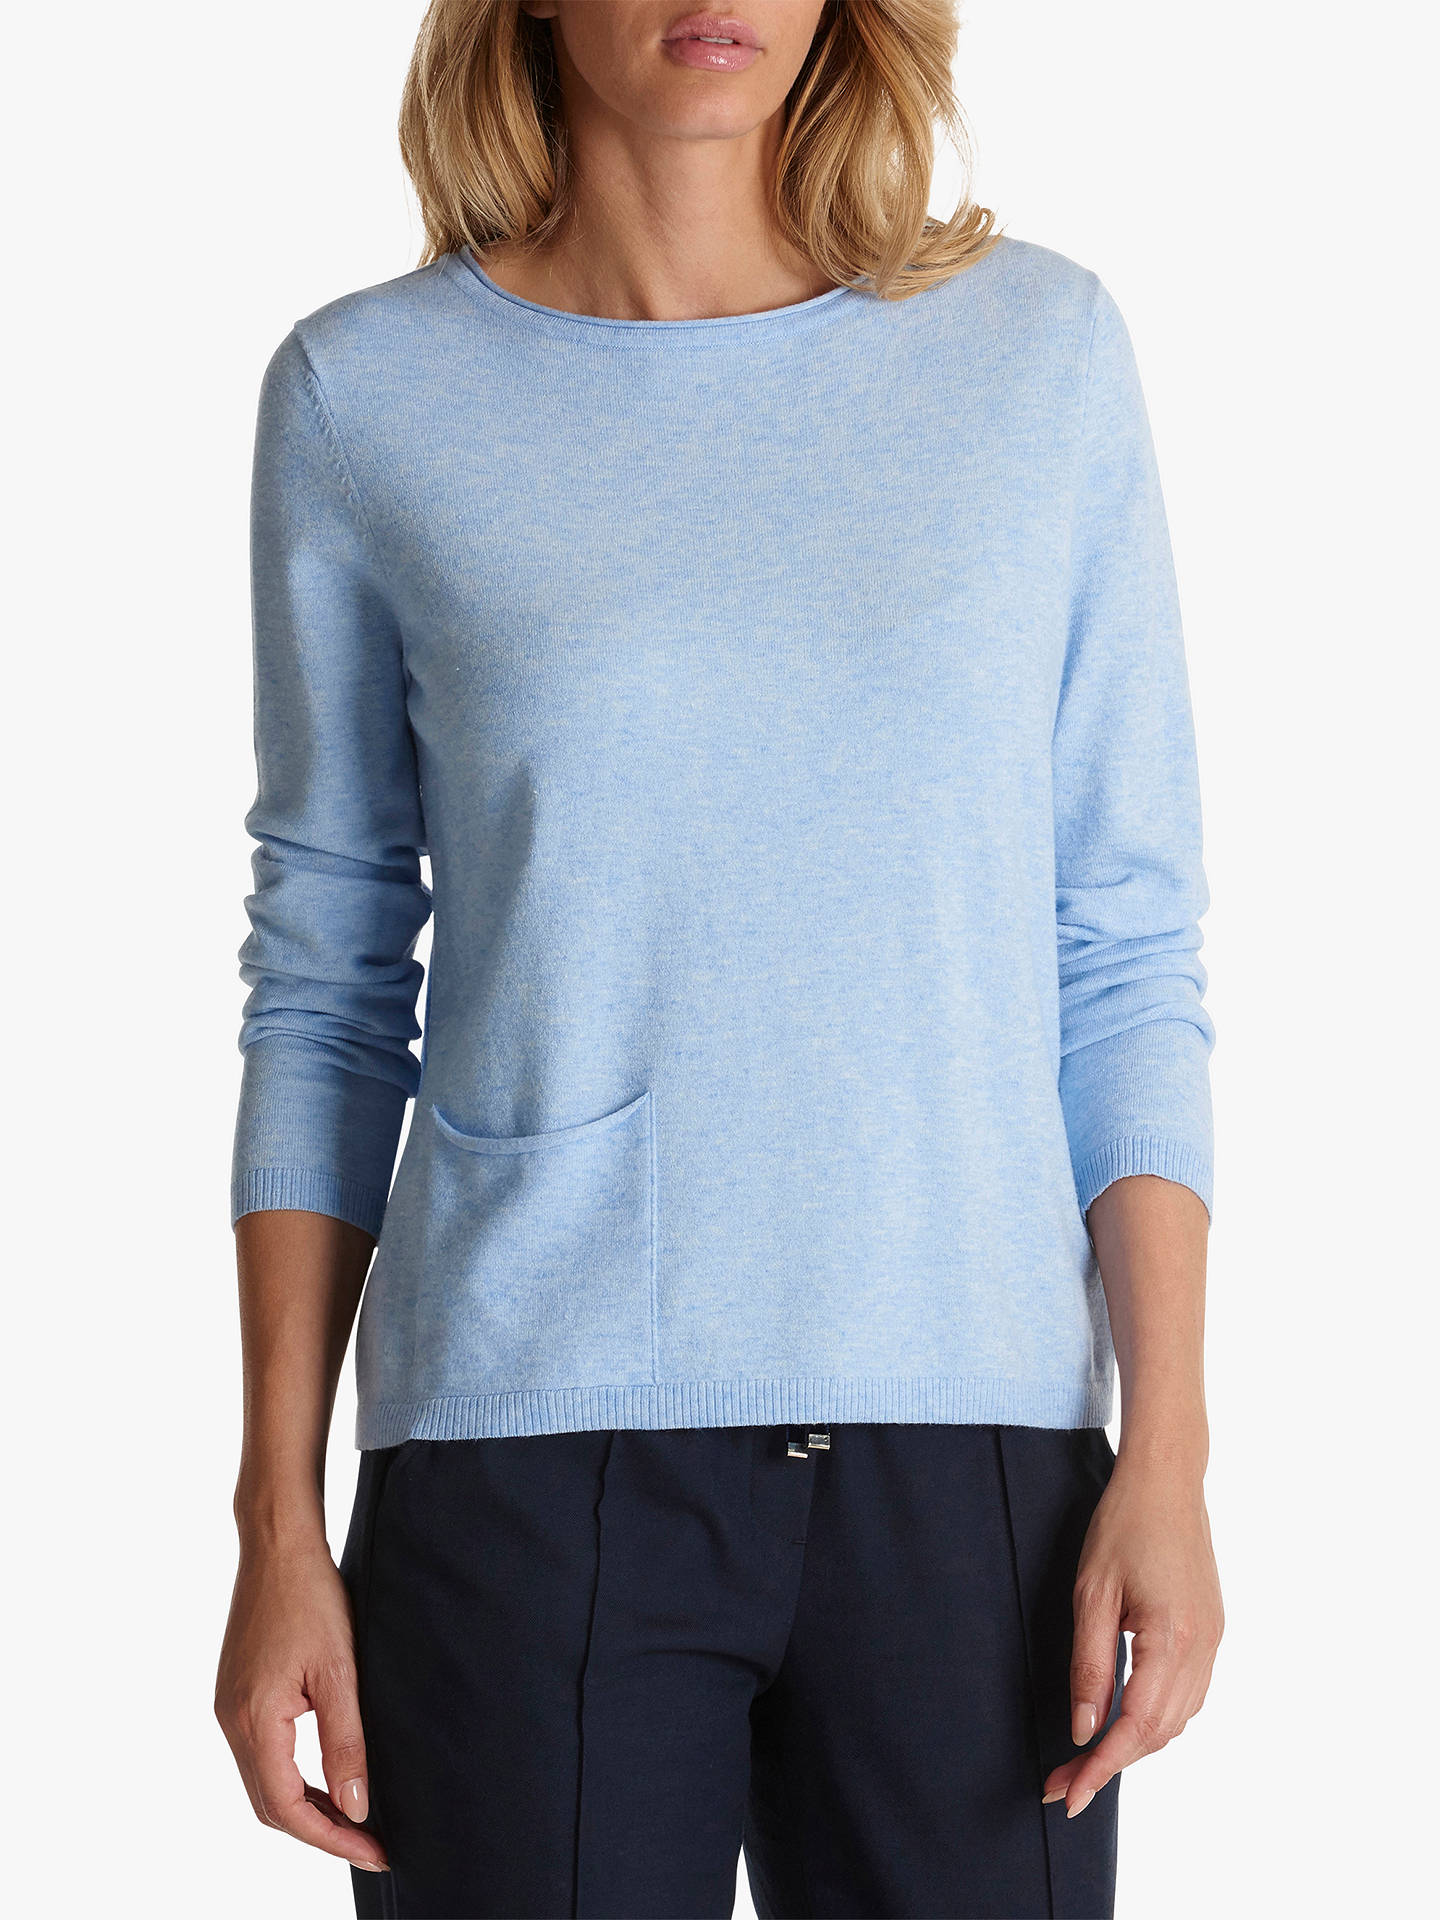 BuyBetty Barclay Fine Knit Jumper, Light Opal, 12 Online at johnlewis.com